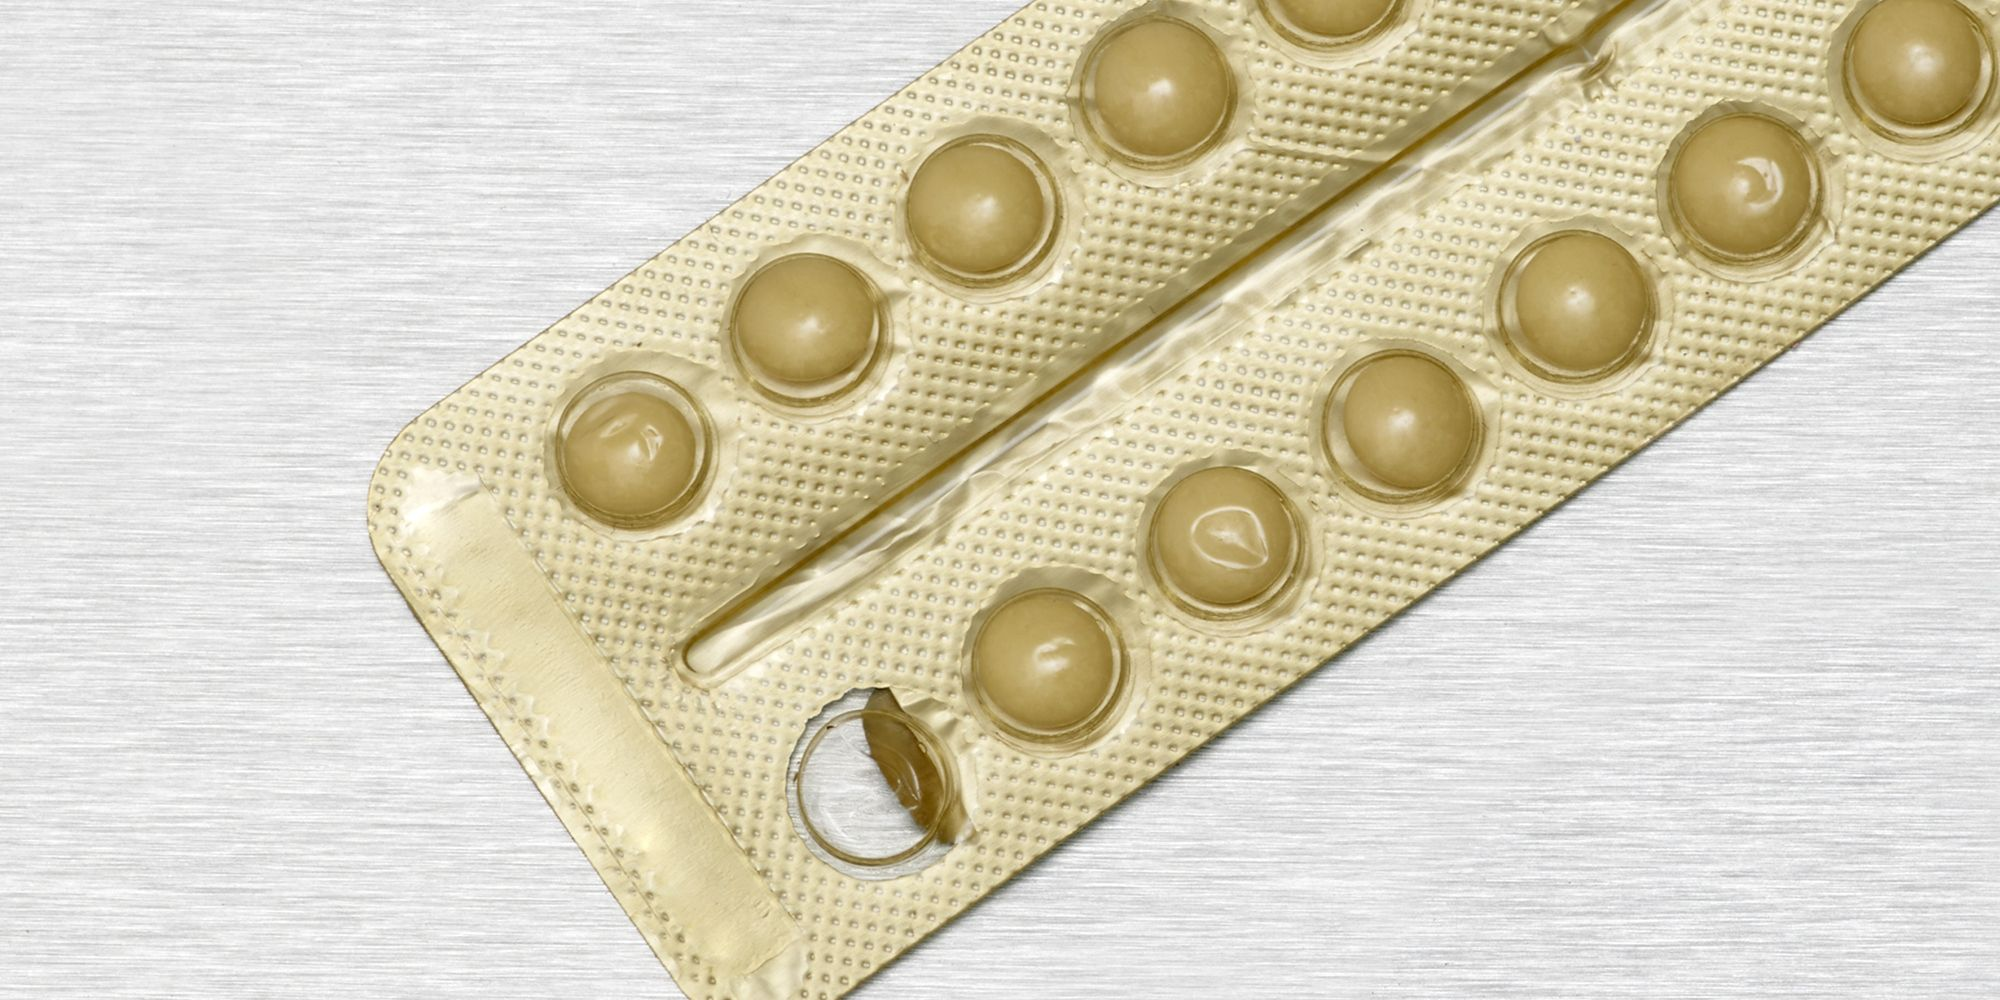 The reason why certain women can get pregnant while taking hormonal contraception